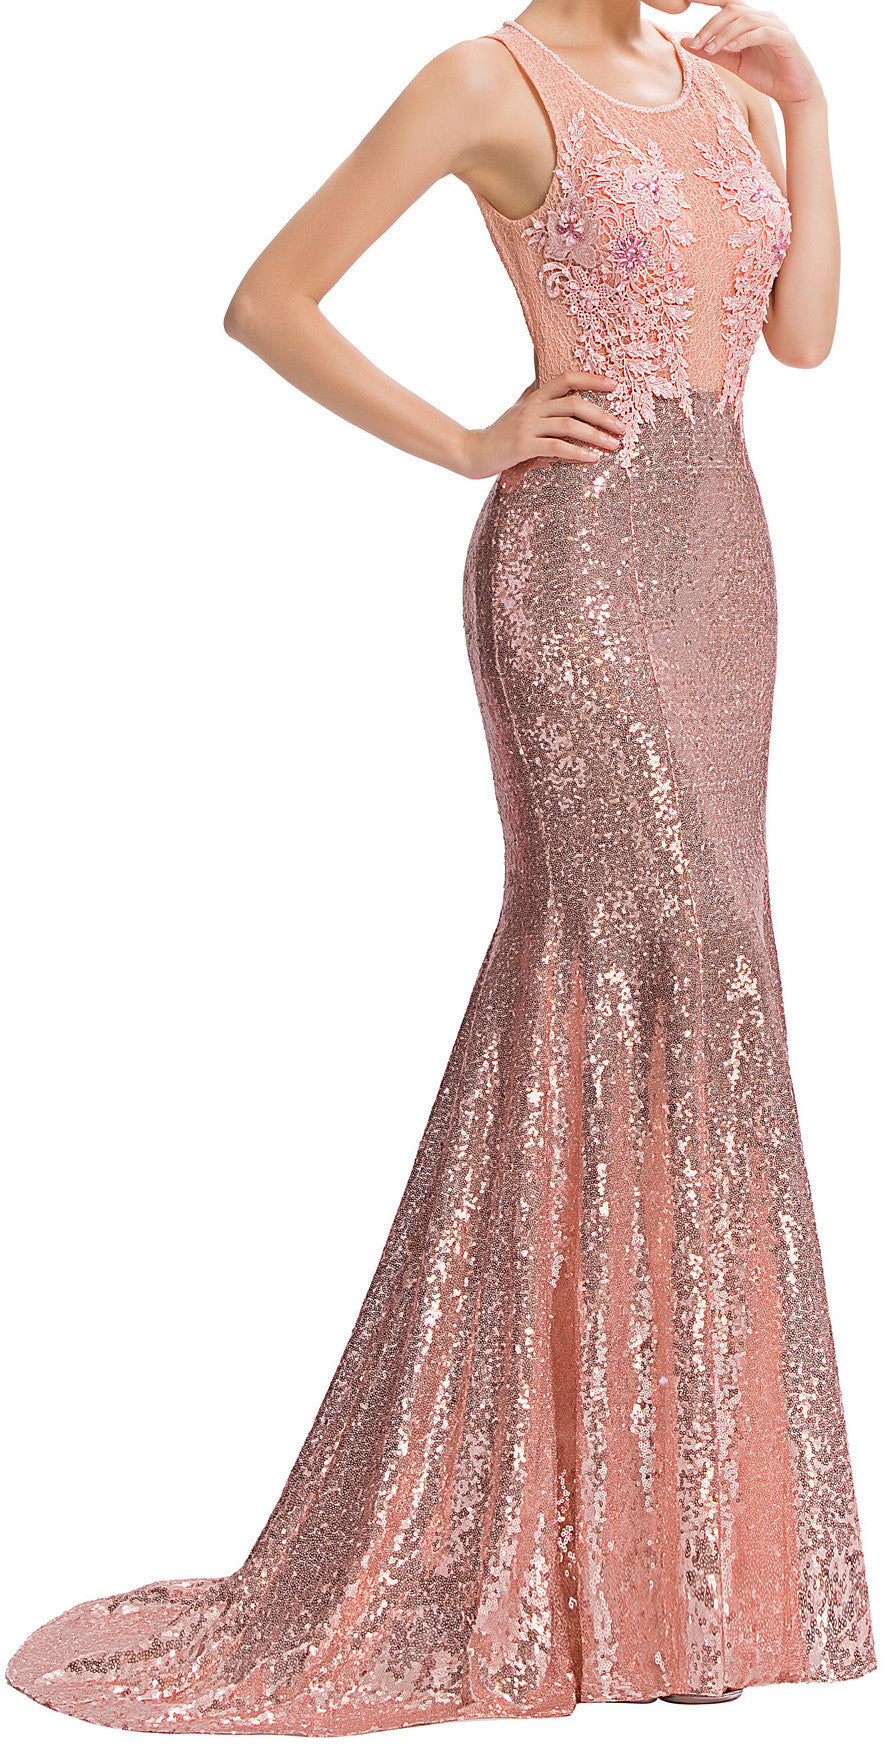 Women's Pink  Lace Sequined Party Dresses Beading Appliques Mermaid Evening  Gown EM00013